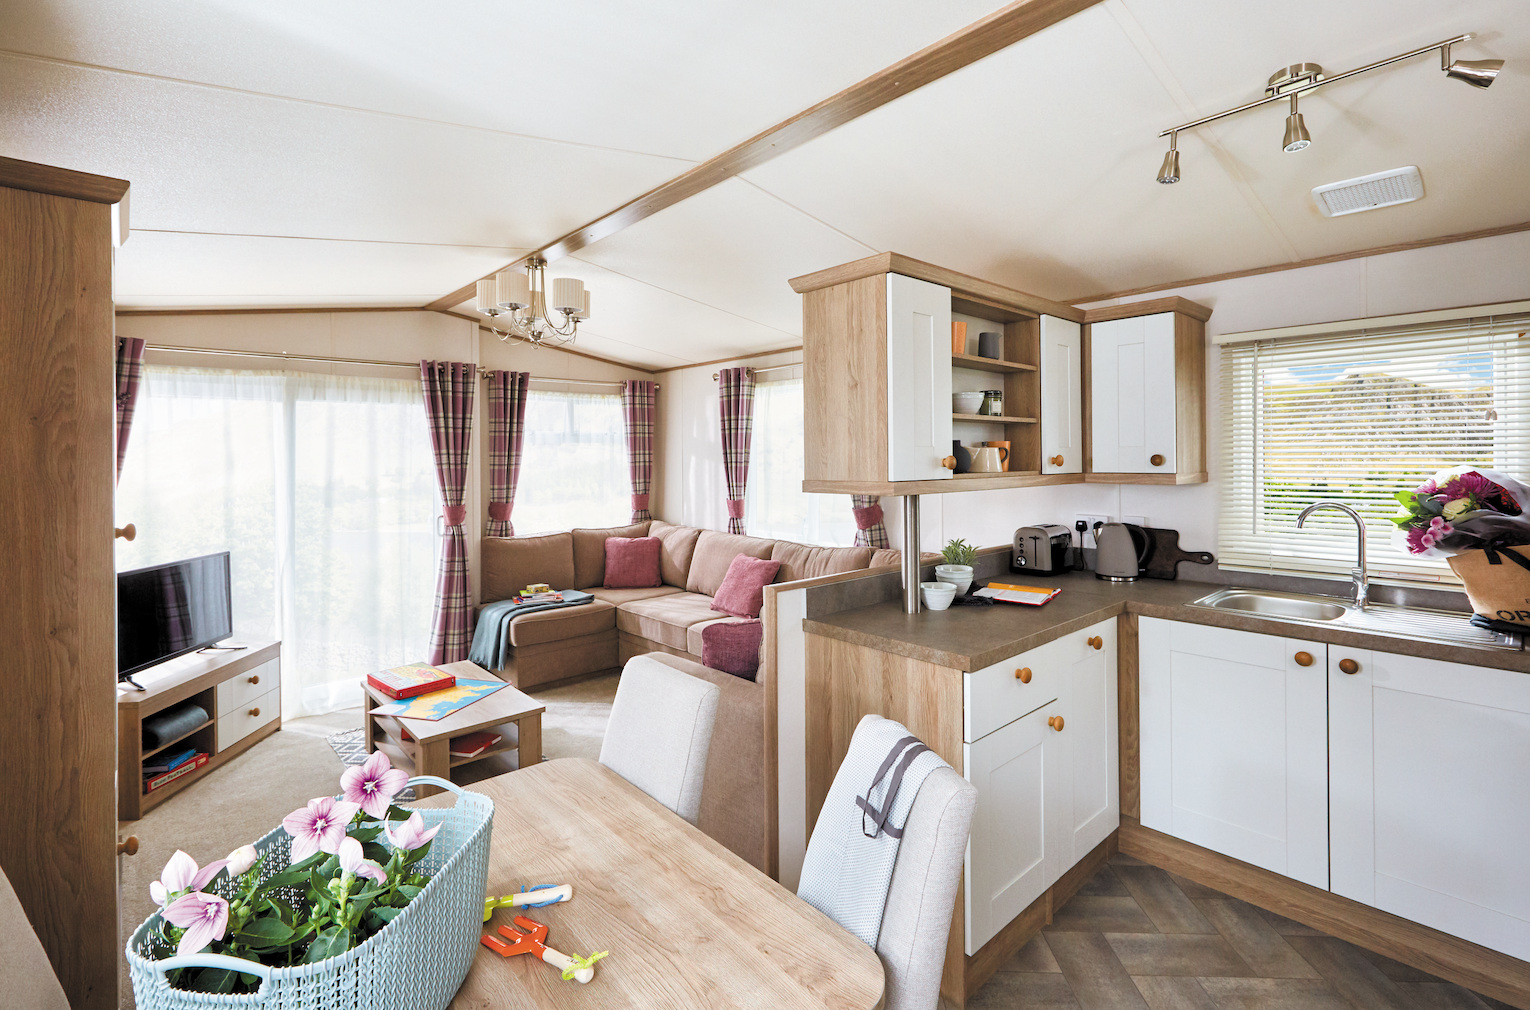 holiday cottages lincolnshire, glamping pods with hot tub, lodge holidays near lincoln